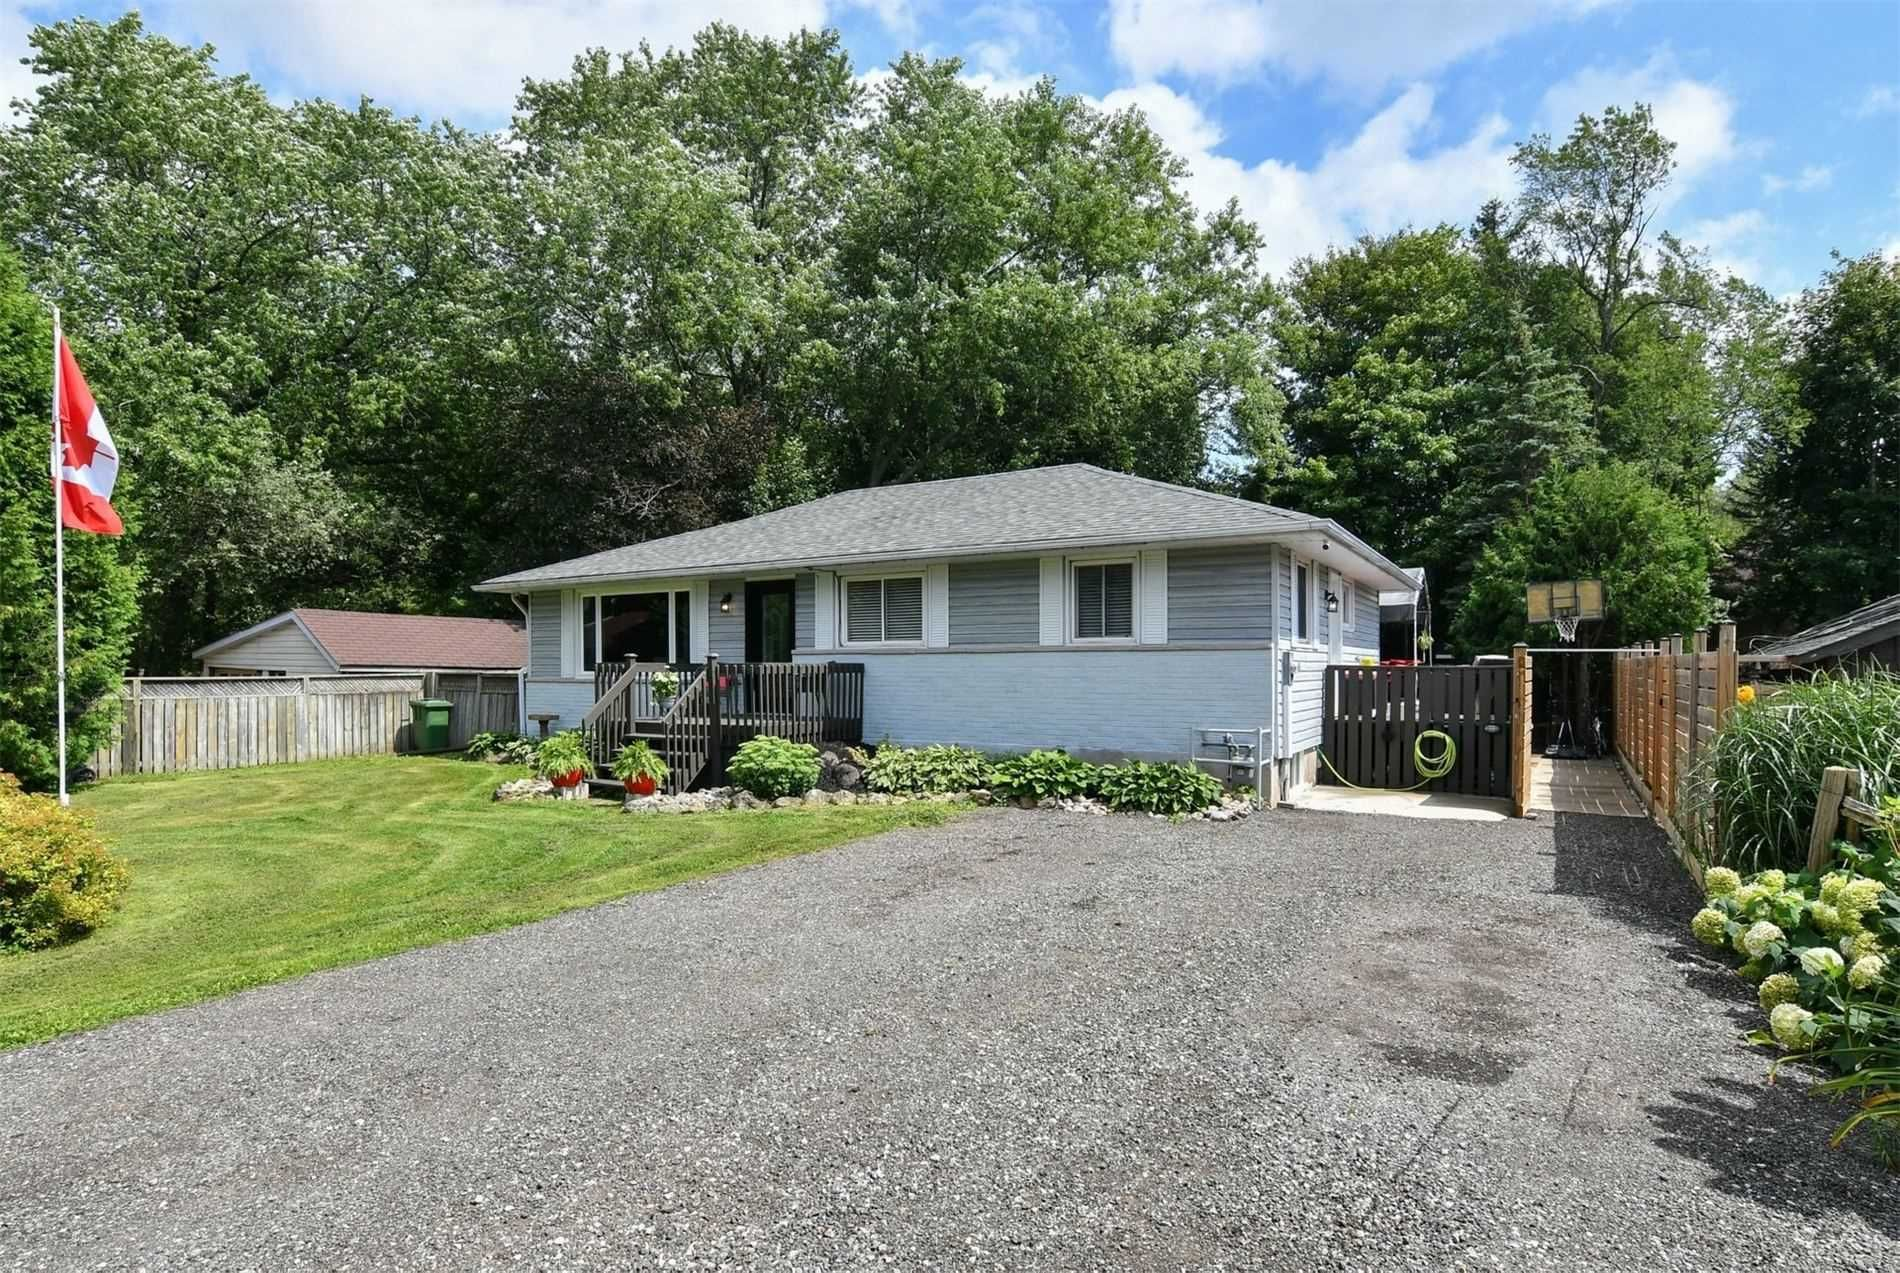 Main Photo: 61 E William Street in Caledon: Rural Caledon House (Bungalow) for sale : MLS®# W5342914